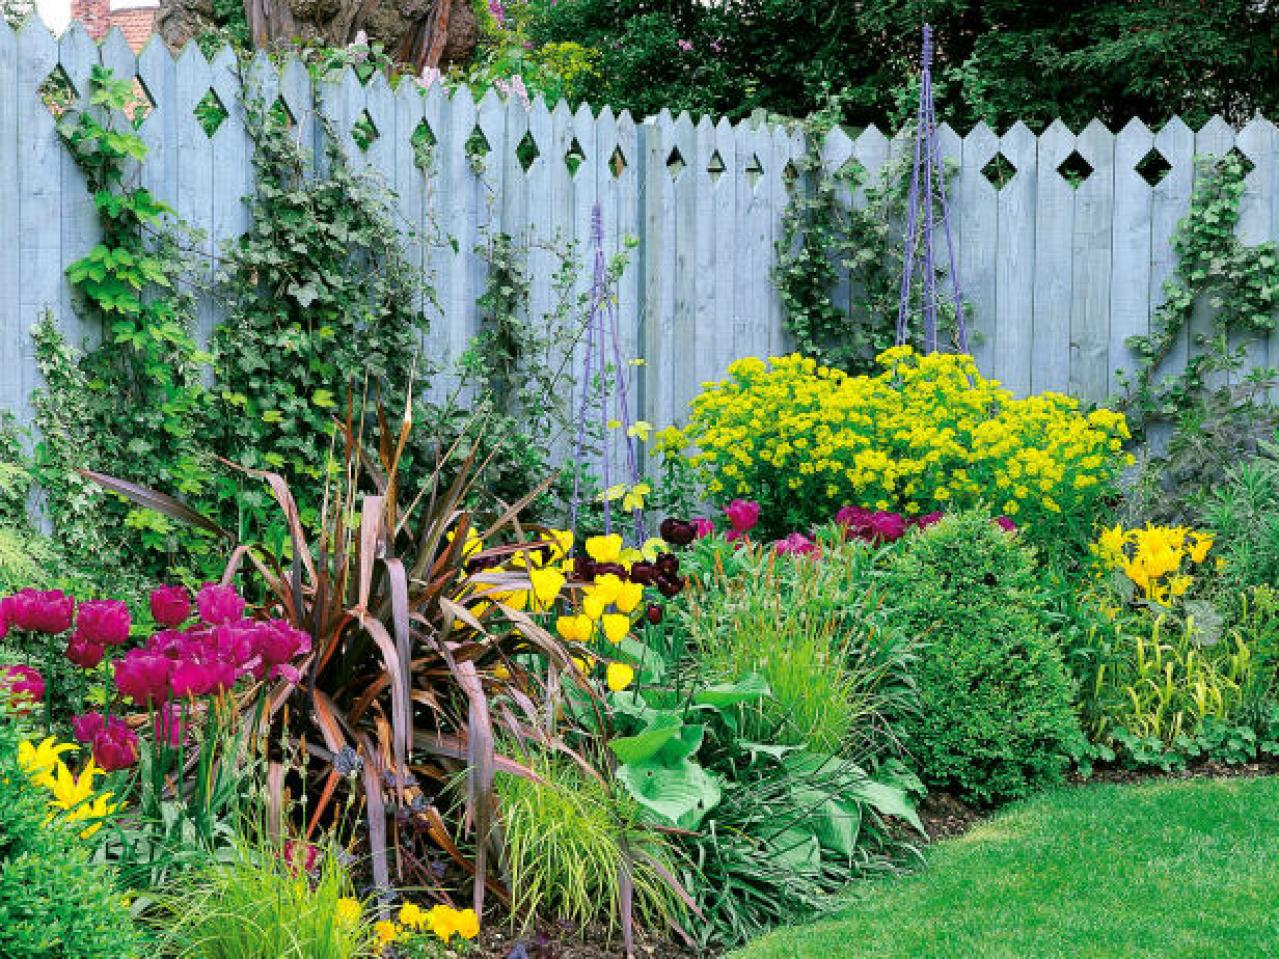 Obituary Photos Honoring Mrs. Nancy (Ball) Moore - Peterson ... on landscape design zone 6, hedge zone 4, landscape design zone 8, landscape design zone 5, landscape design zone 3, landscape design zone 7, landscape design zone 9,